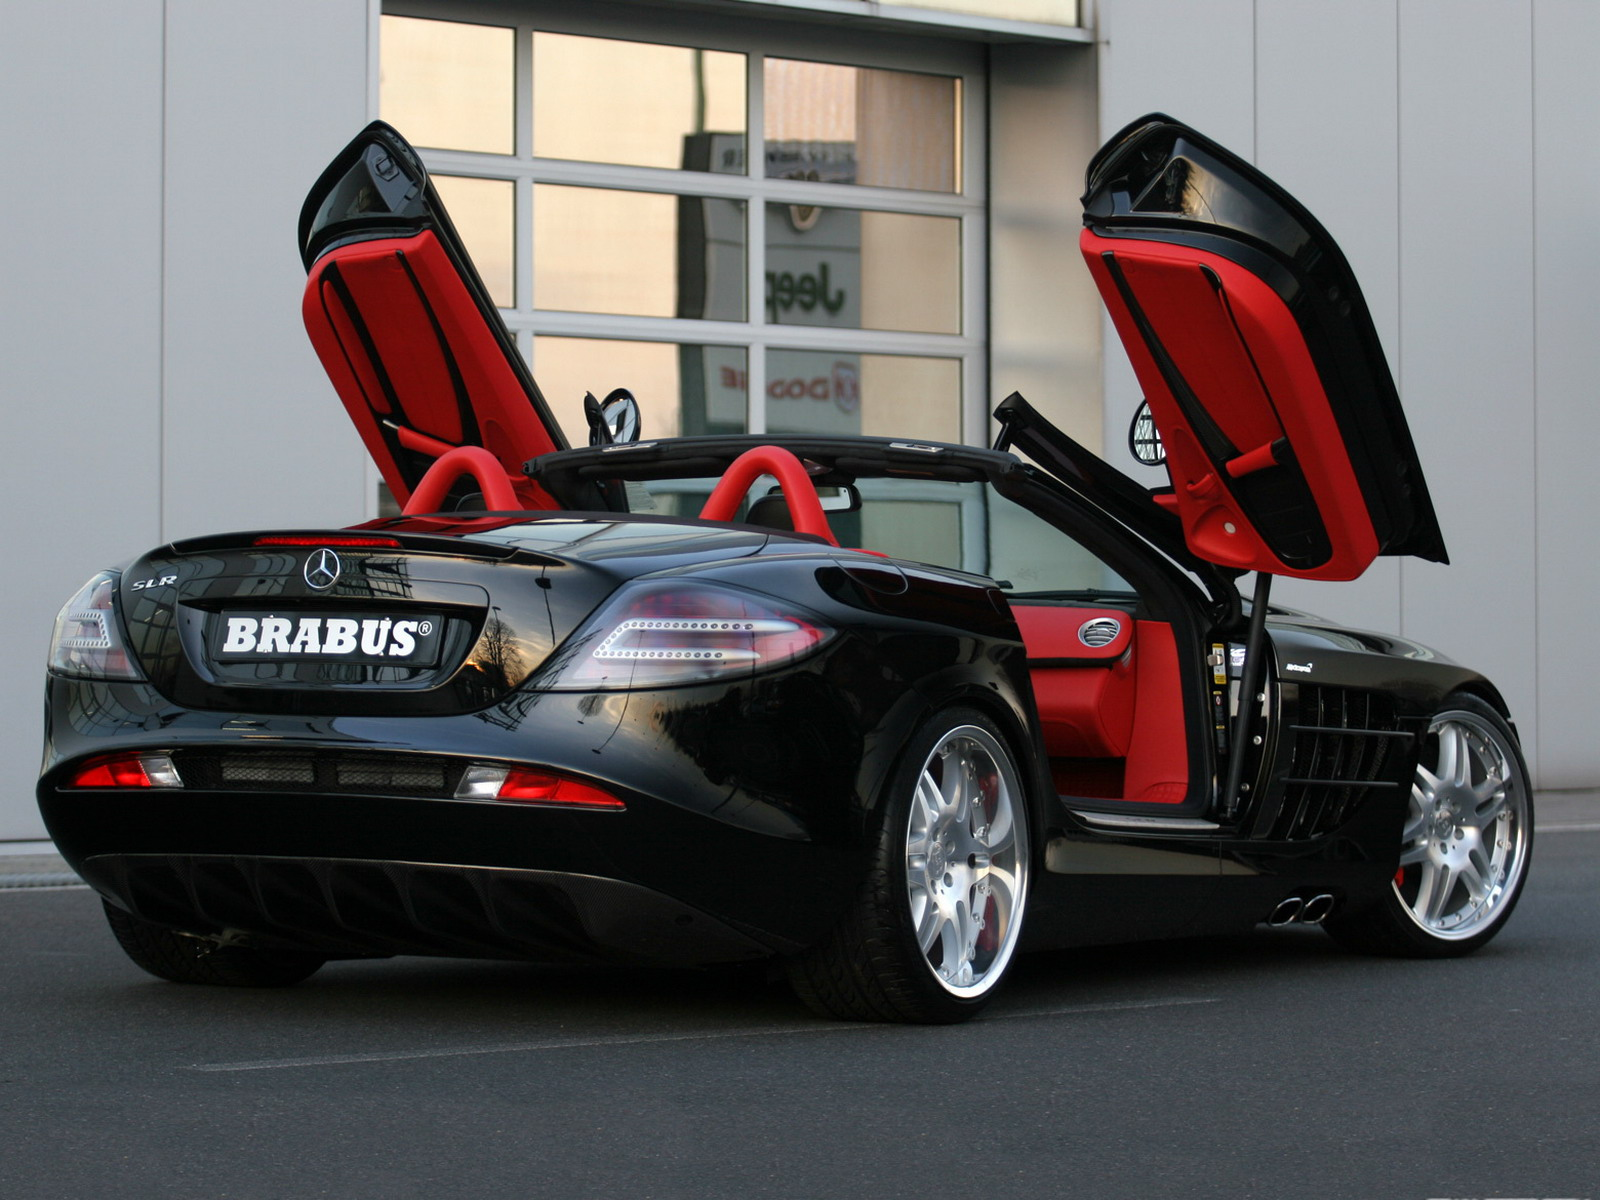 Mercedes-Benz SLR Brabus. View Download Wallpaper. 1600x1200. Comments